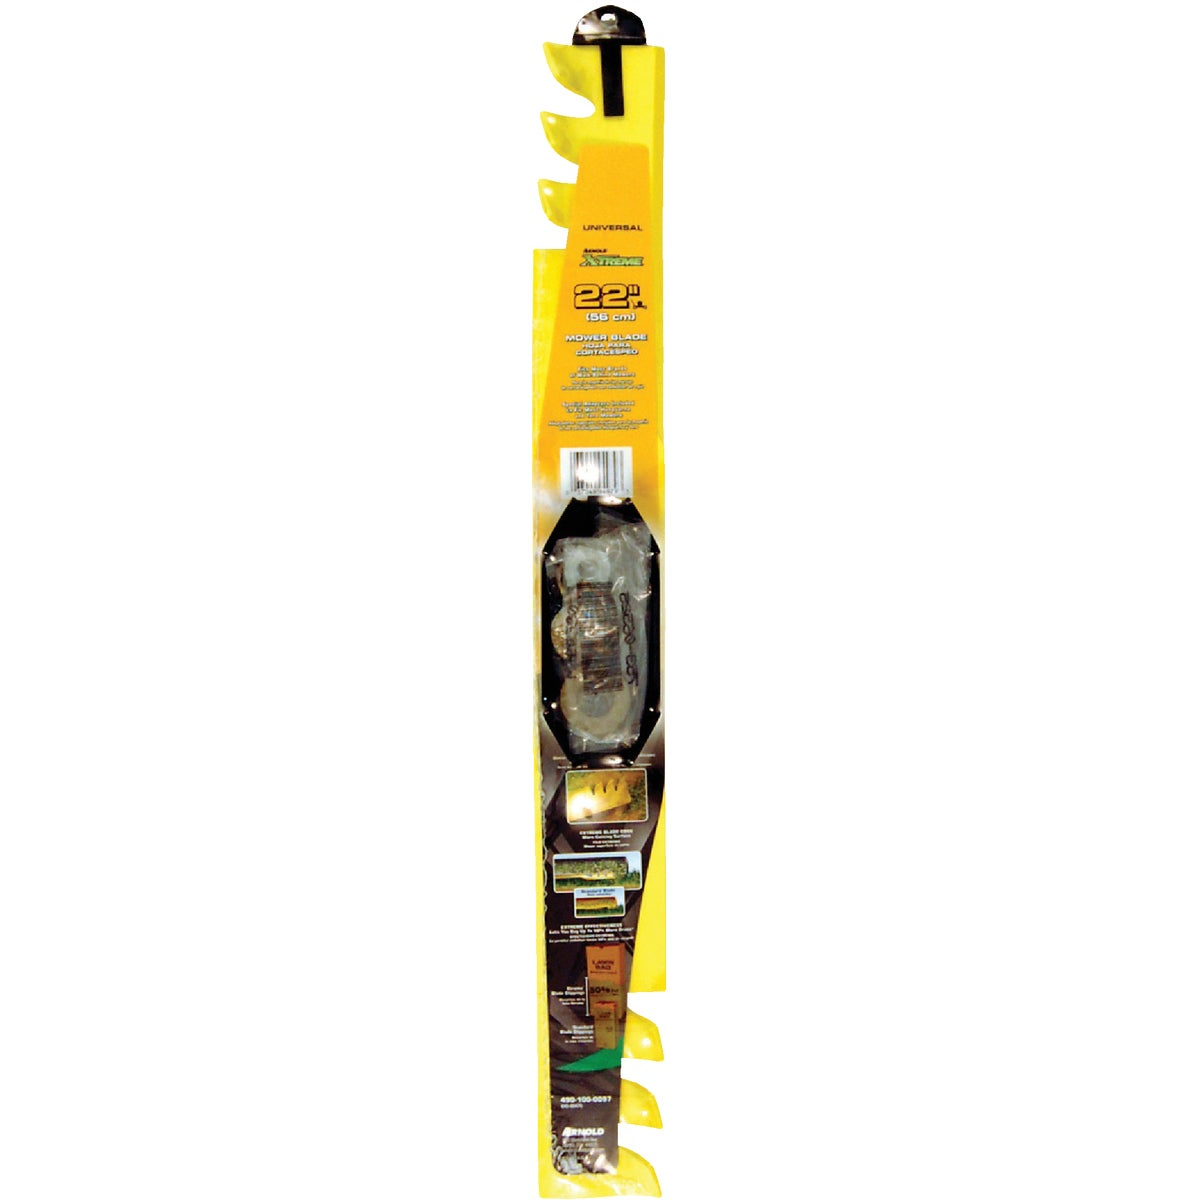 "22"" UNIV MULCH BLADE - 490-100-0097 by Arnold Corp"